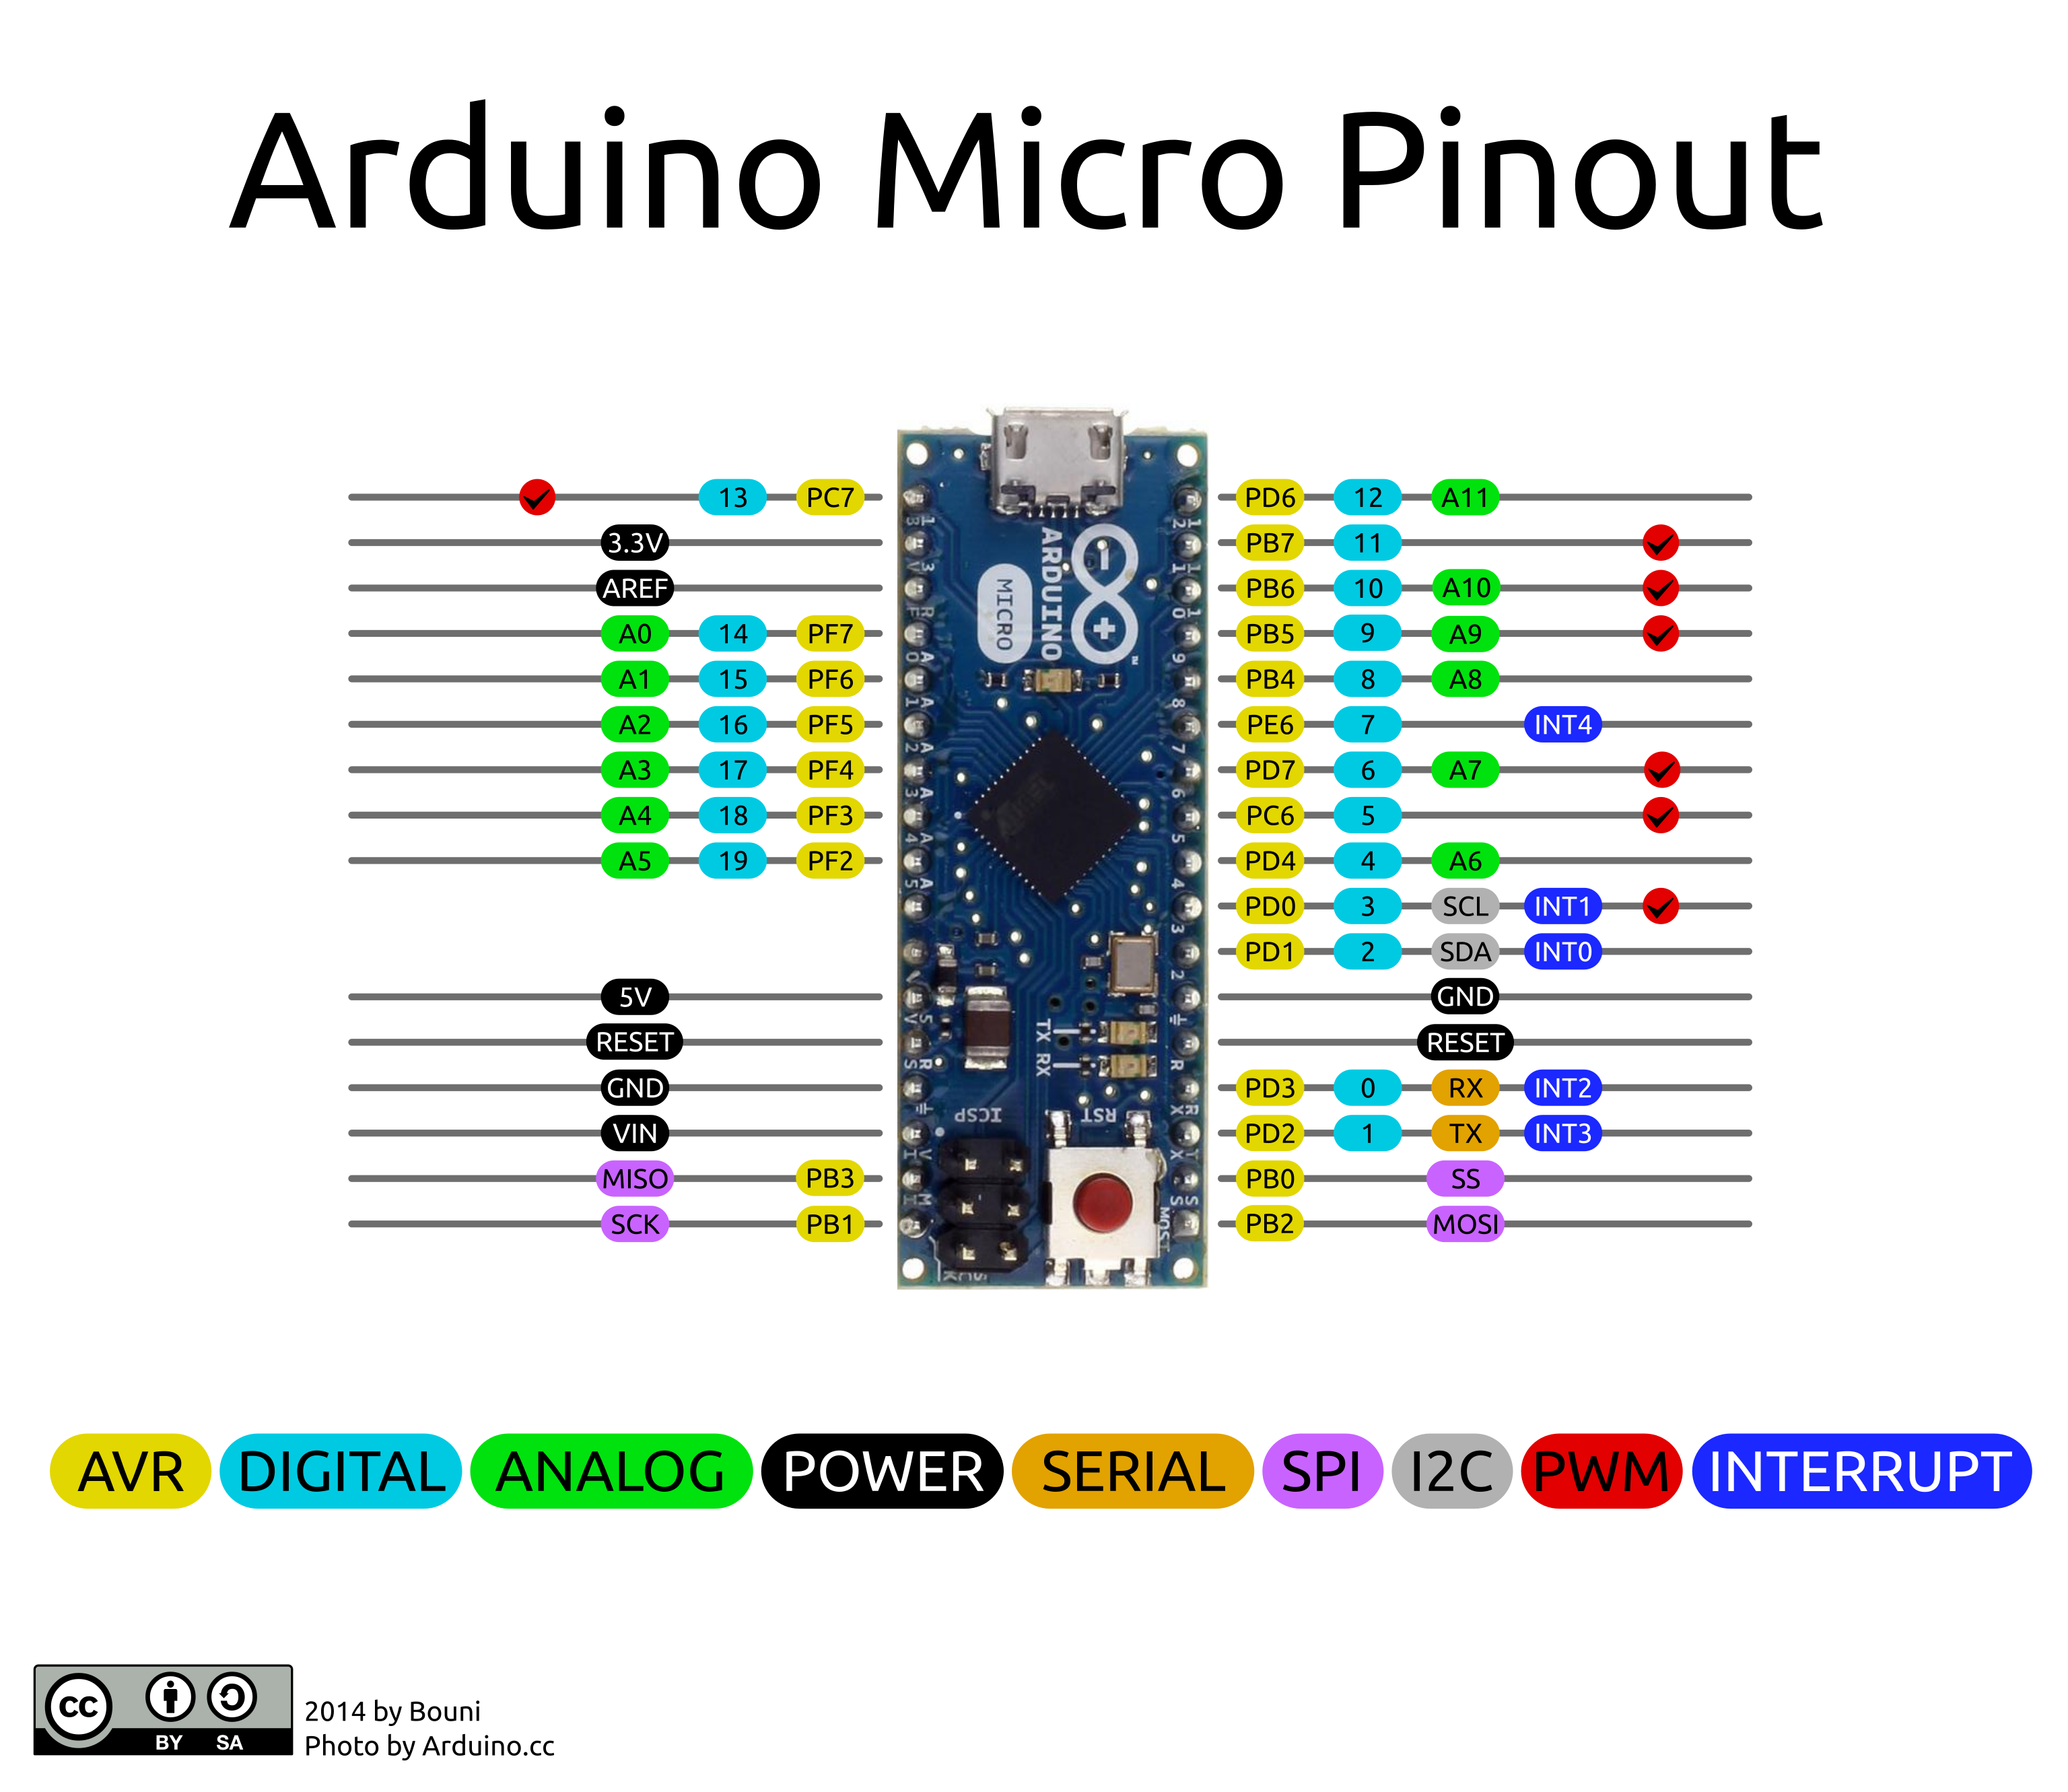 arduino micro pinout arduino pinterest arduino and arduino projects. Black Bedroom Furniture Sets. Home Design Ideas